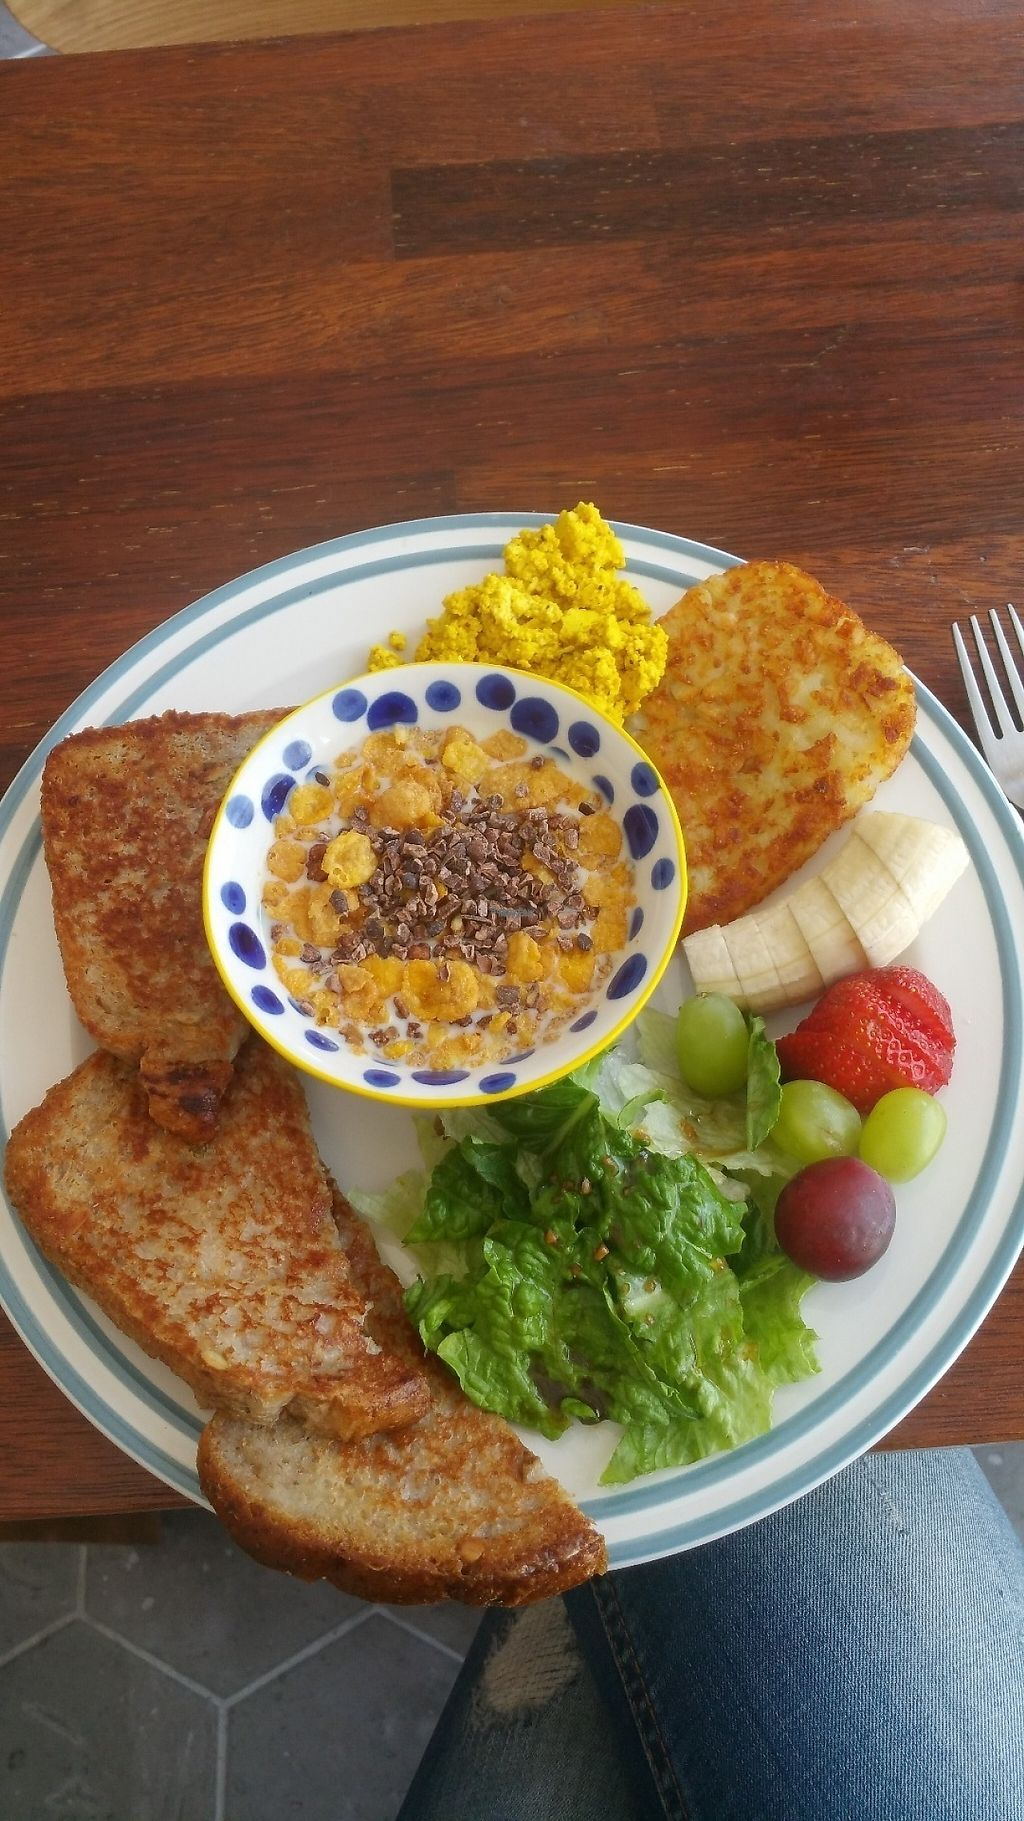 """Photo of Around Green - 어라운드 그린  by <a href=""""/members/profile/Olabusi"""">Olabusi</a> <br/>Tofu scramble, cereals, toast, salad <br/> April 10, 2017  - <a href='/contact/abuse/image/88897/246643'>Report</a>"""